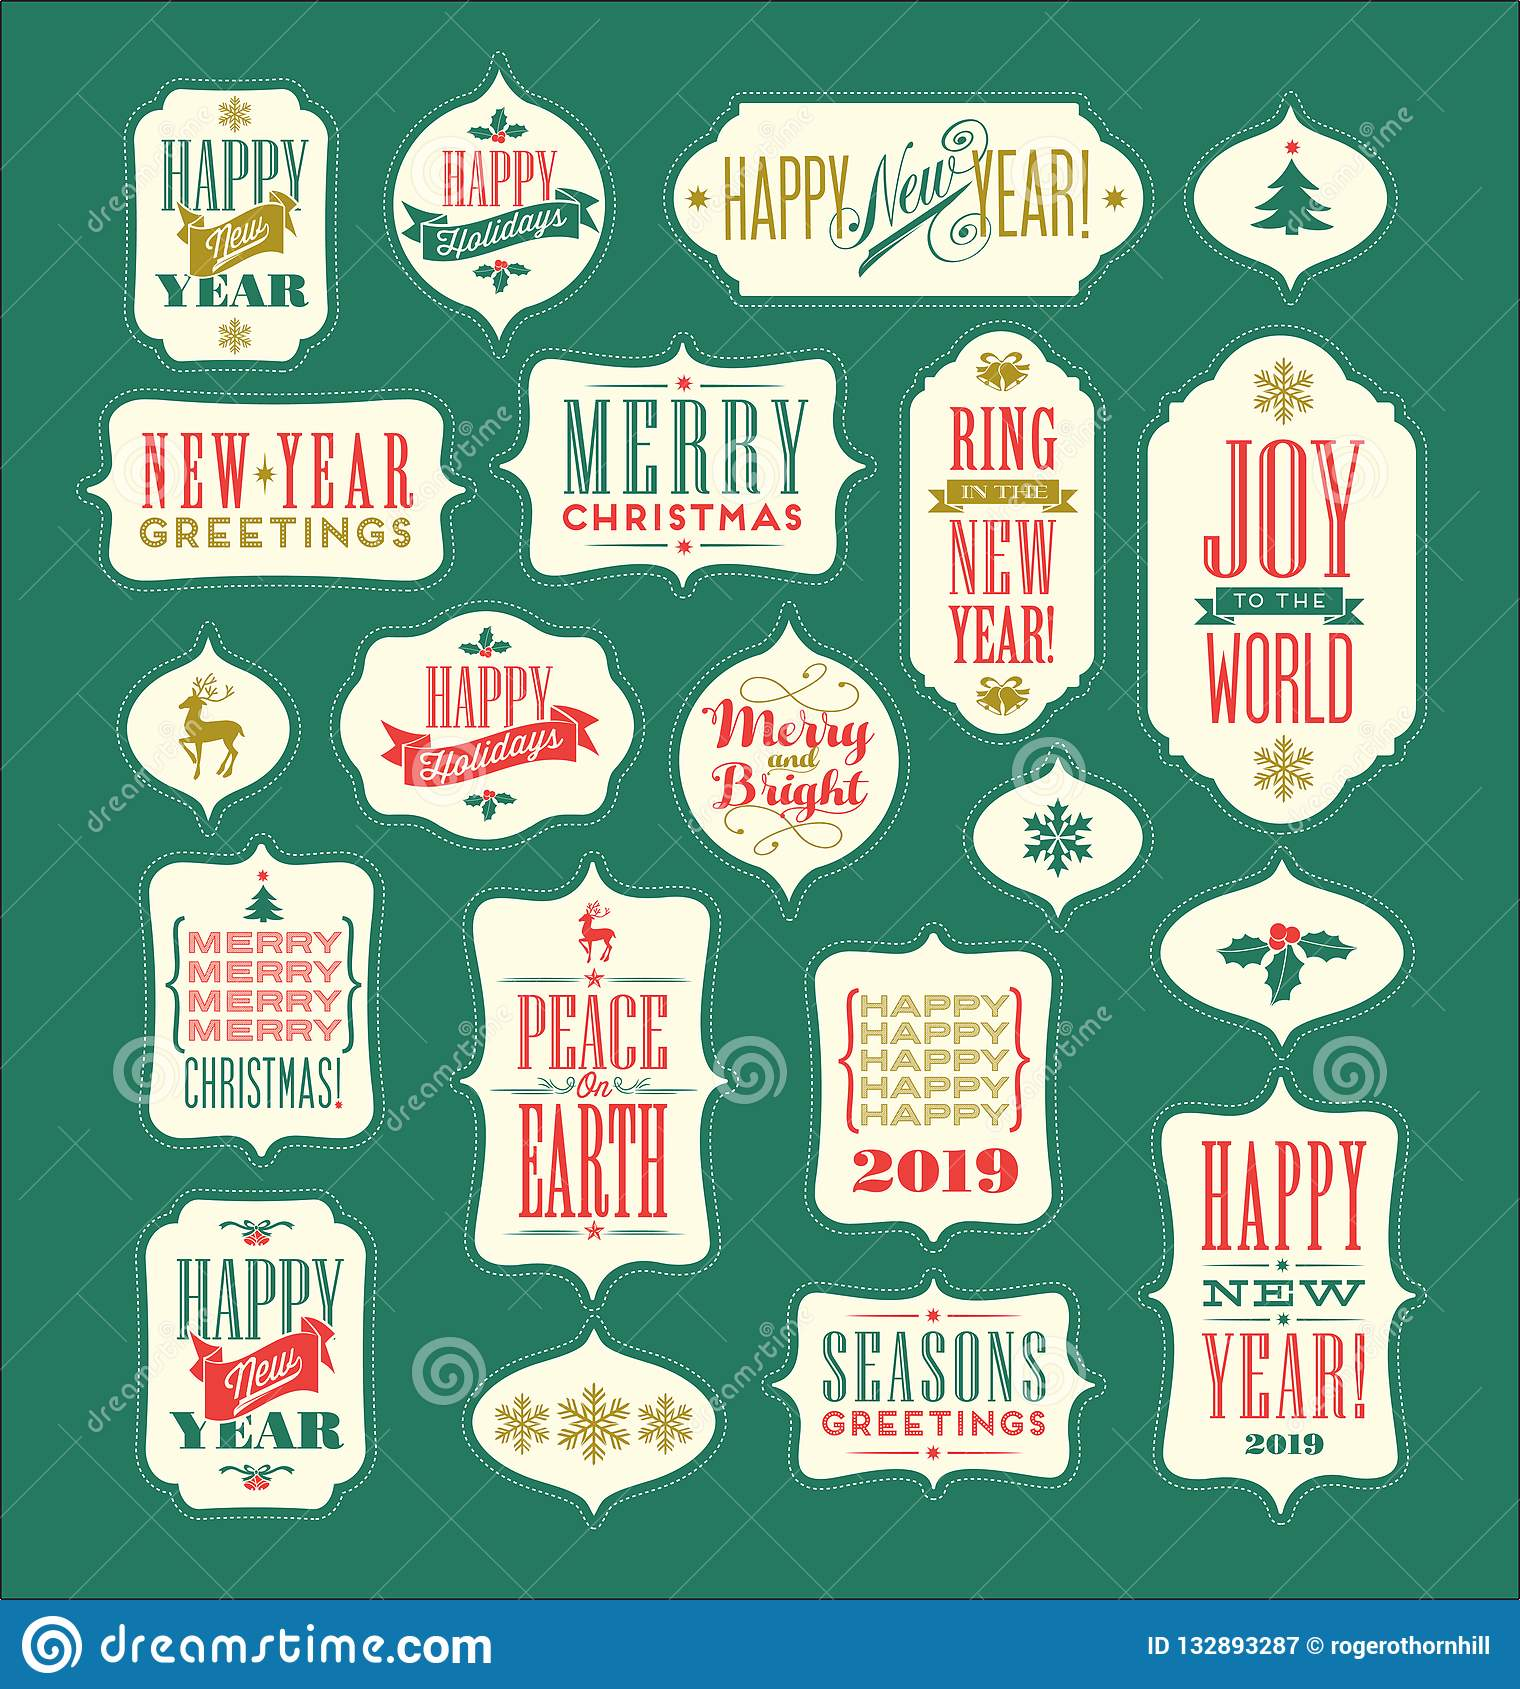 Christmas and new years holiday design elements for gift tags greeting cards banners vintage typography designs